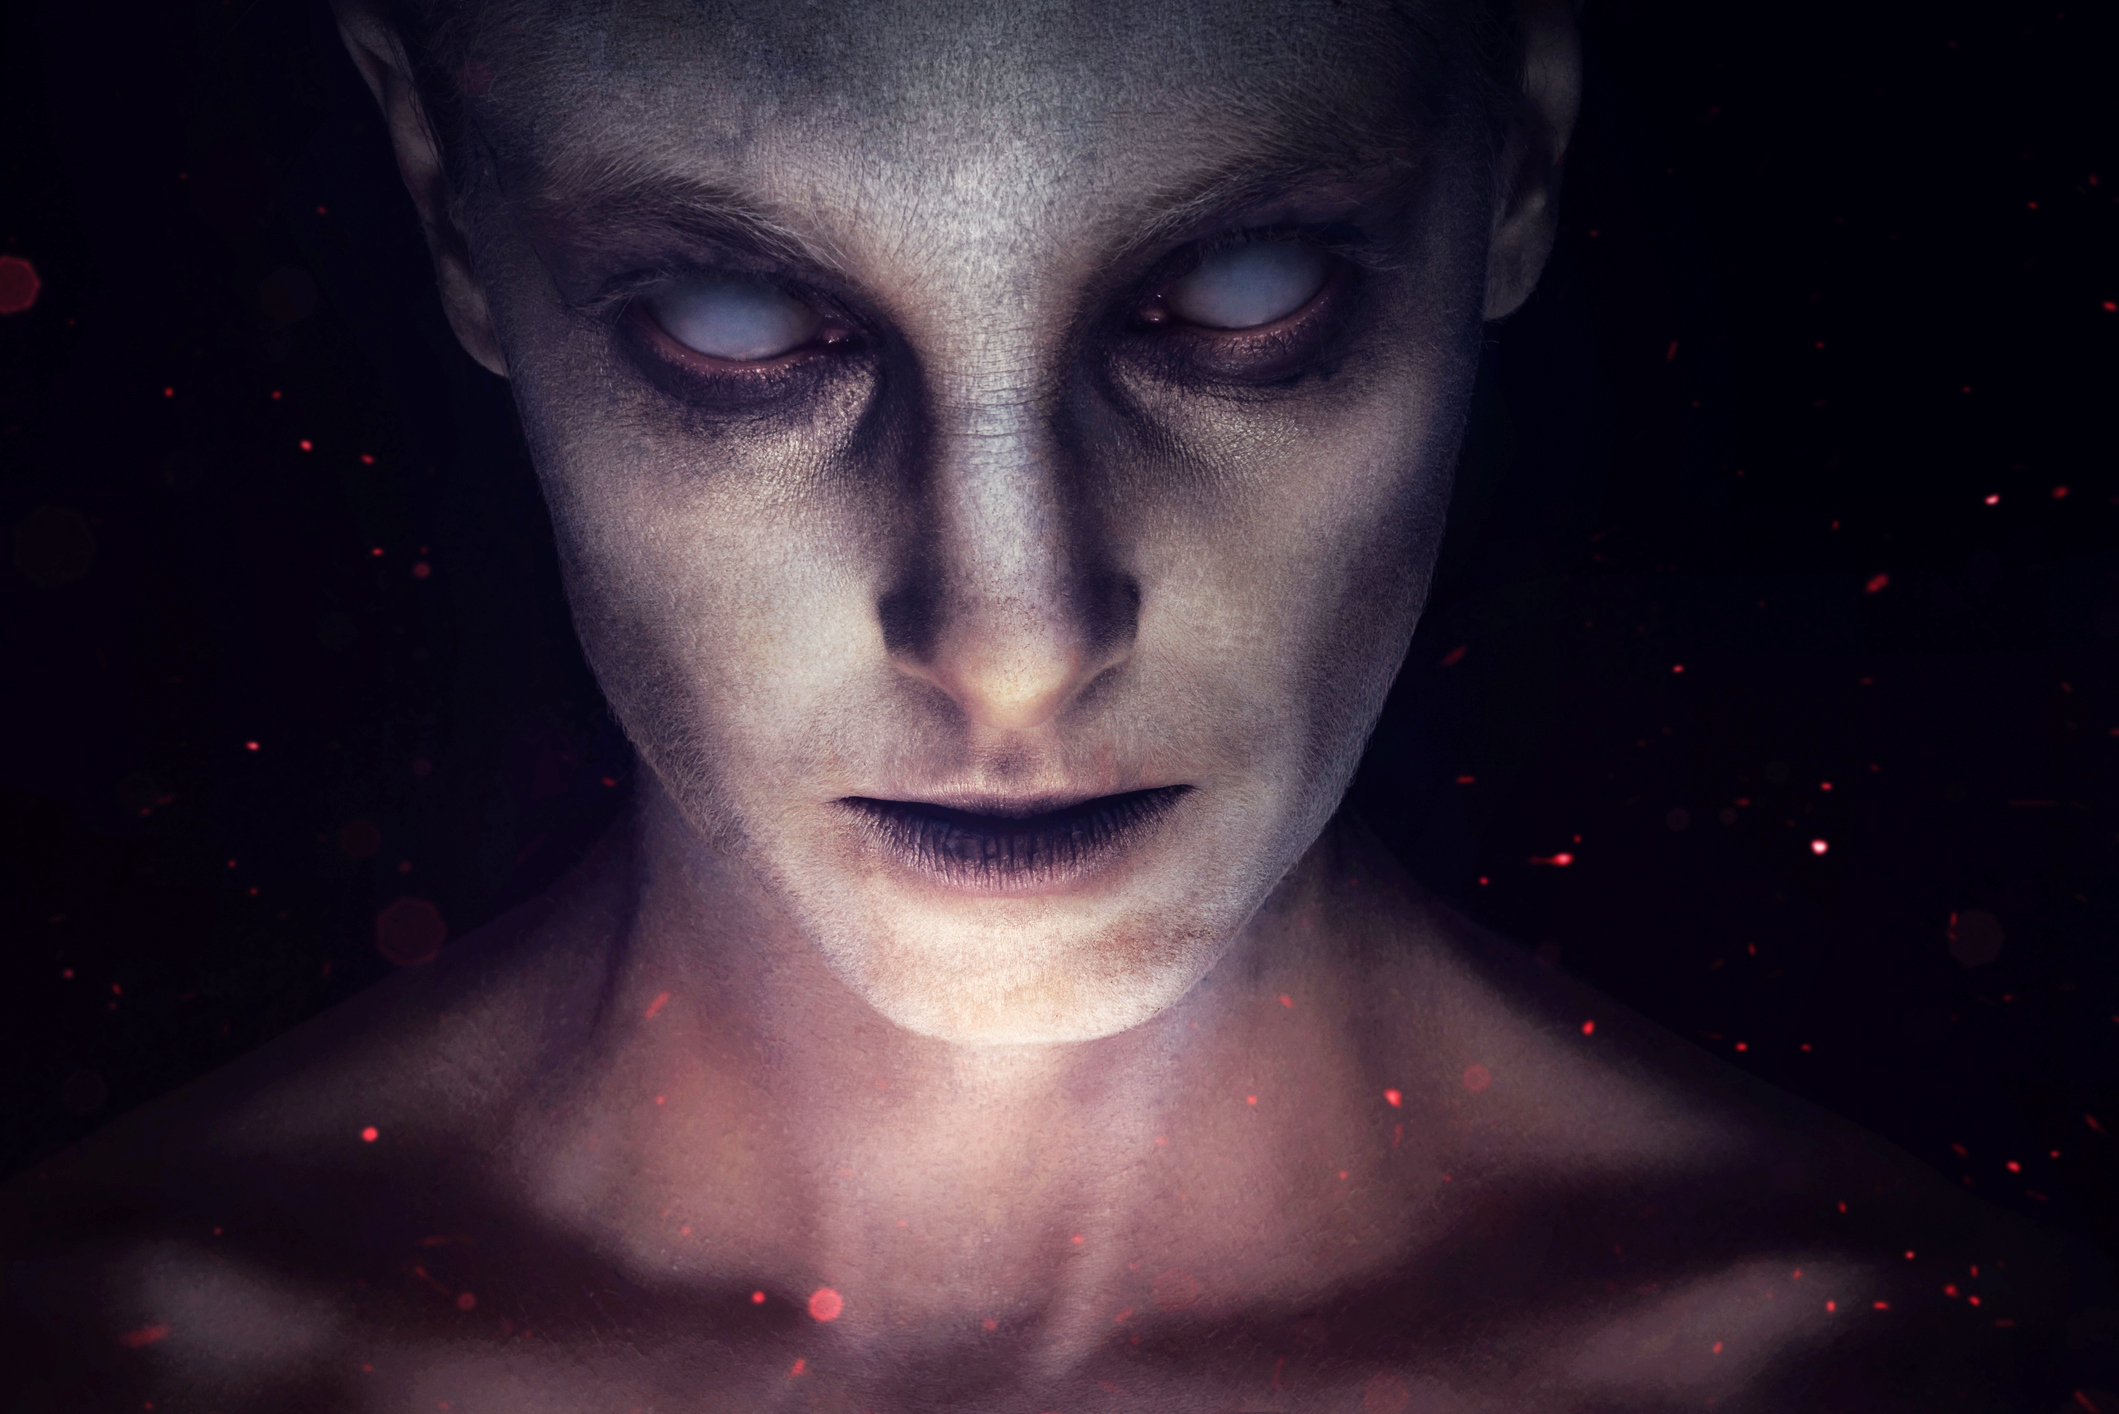 Paranormal Encounters With Demons | LoveToKnow